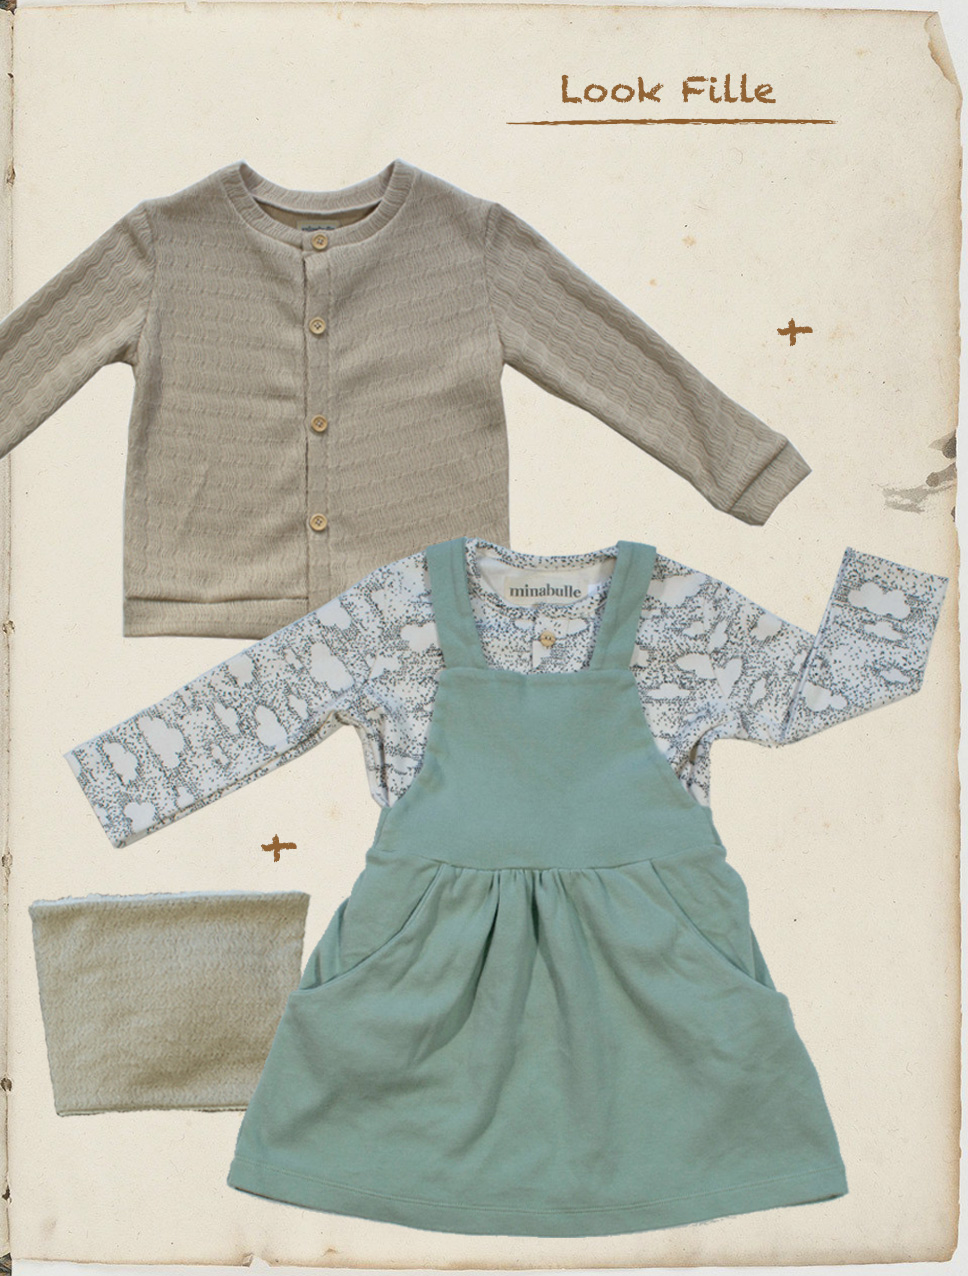 tenue fille rentrée septembre 2018 minabulle collection Daydream vêtements enfants